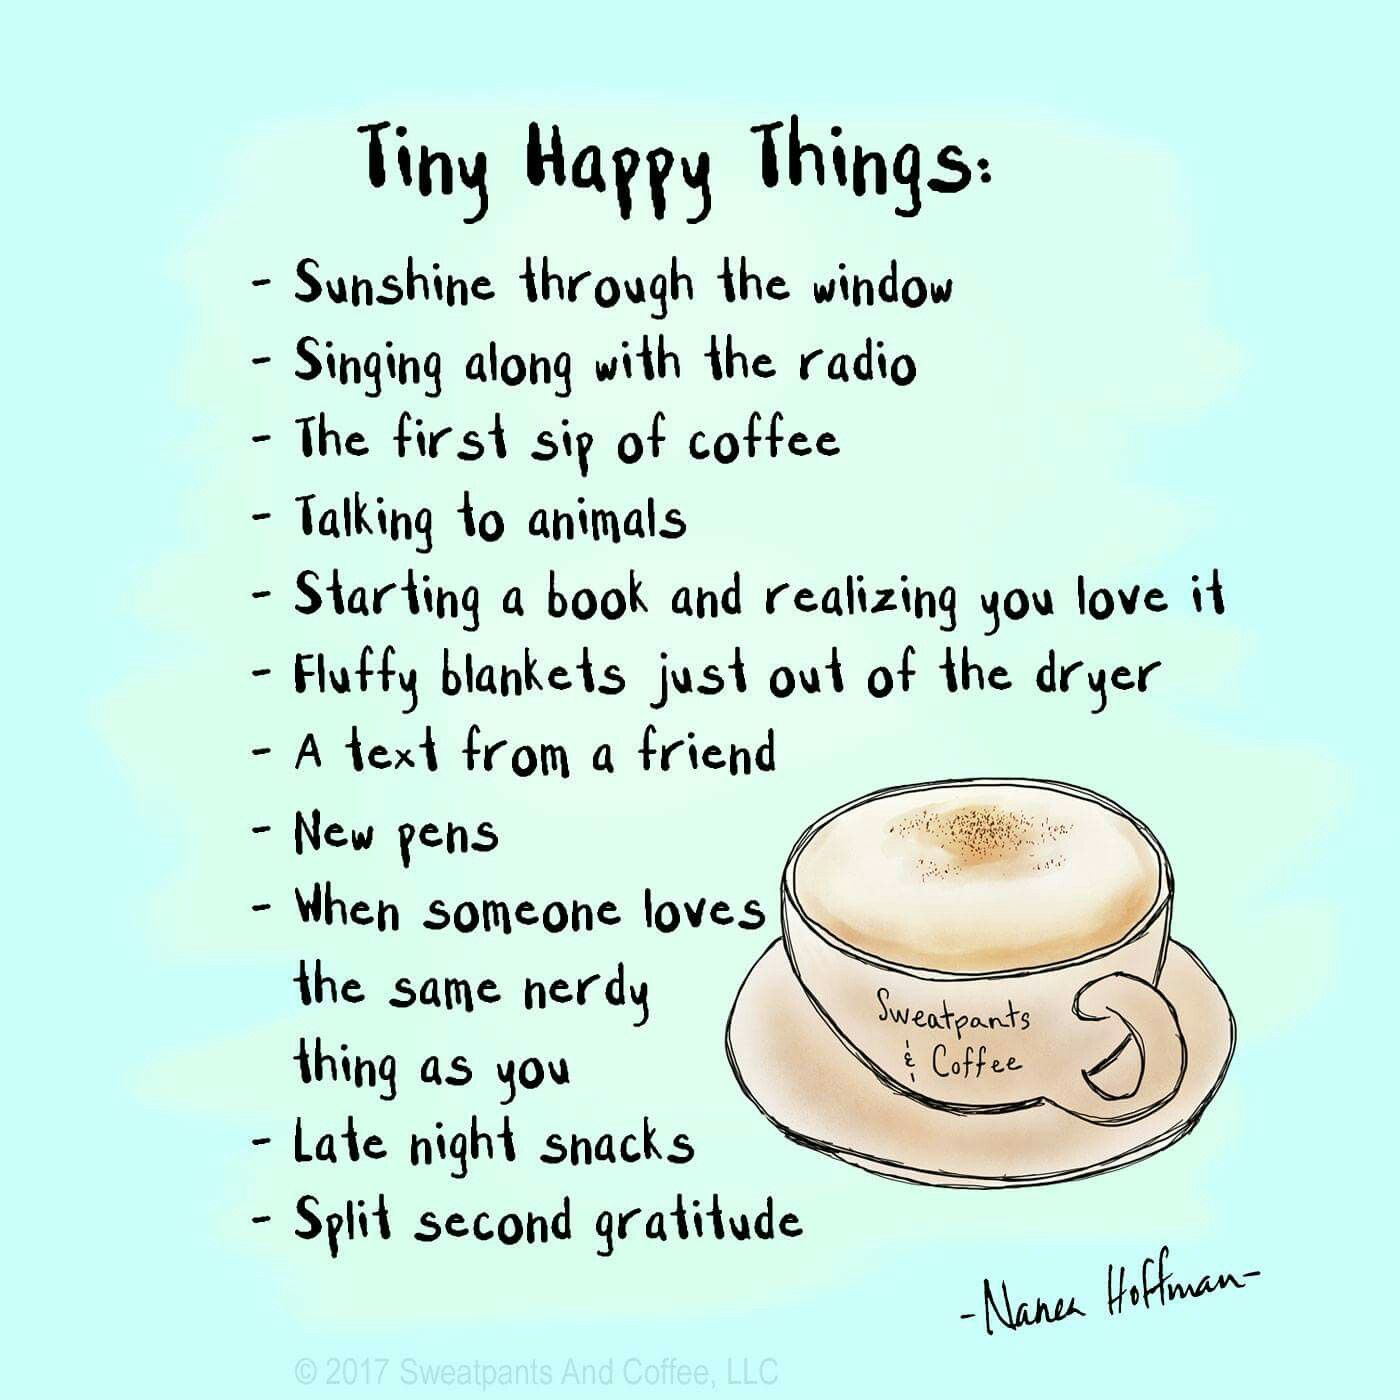 The Small Things Can Make Your Day D Hygge Hygge Life Words